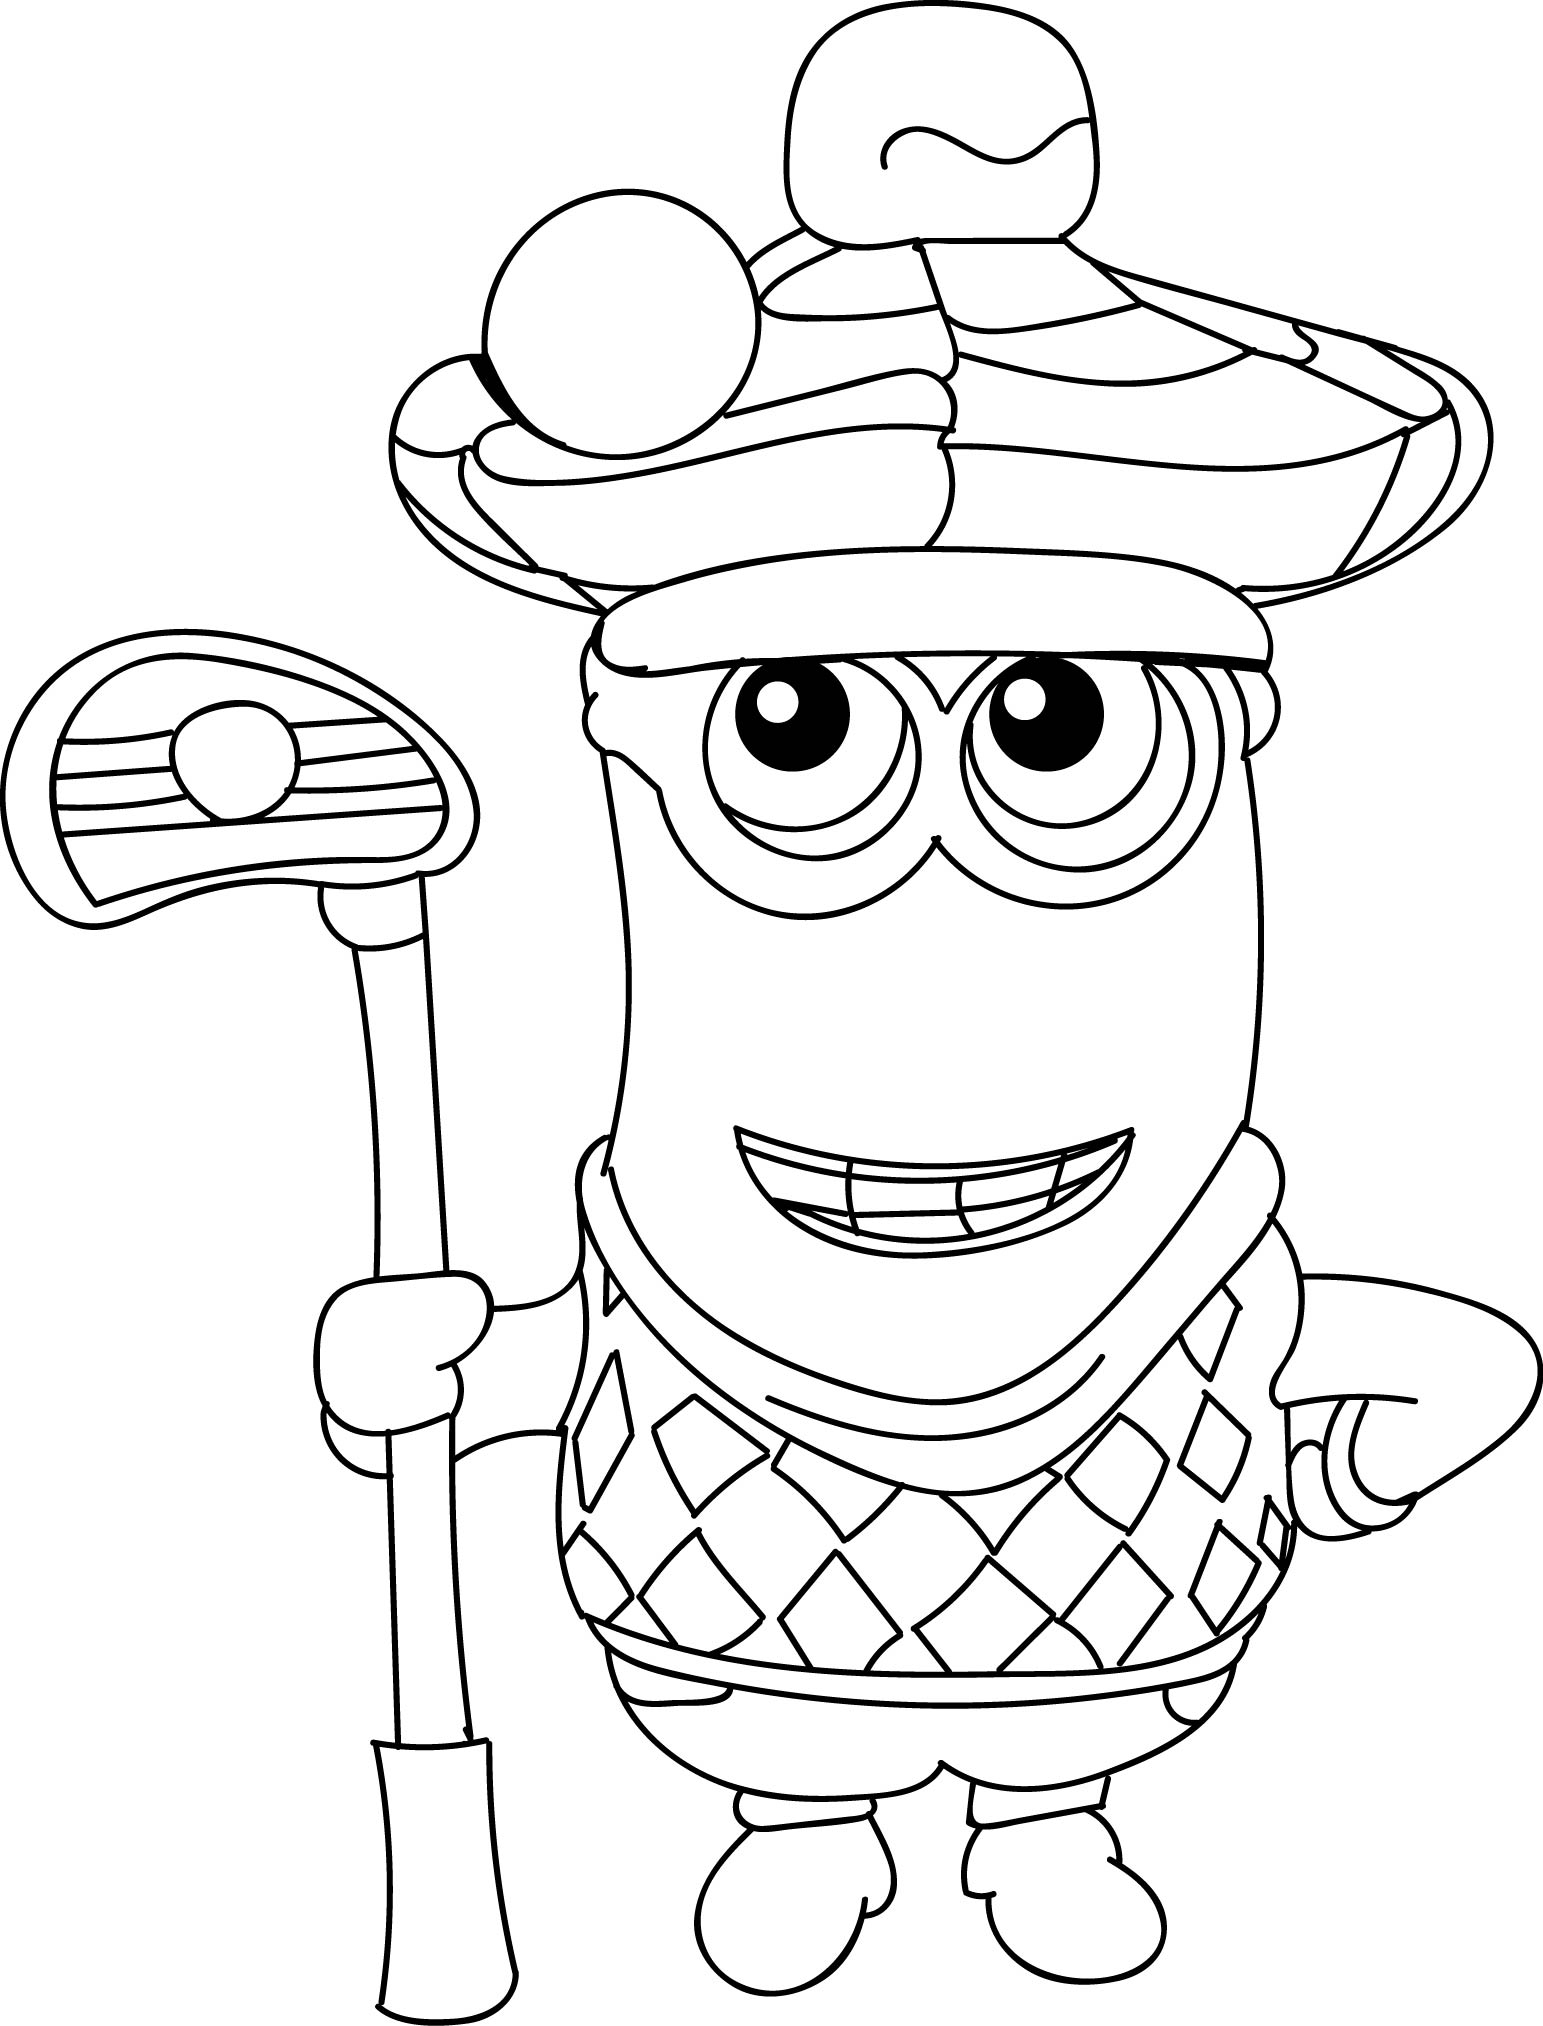 Minion Golfer Coloring Page